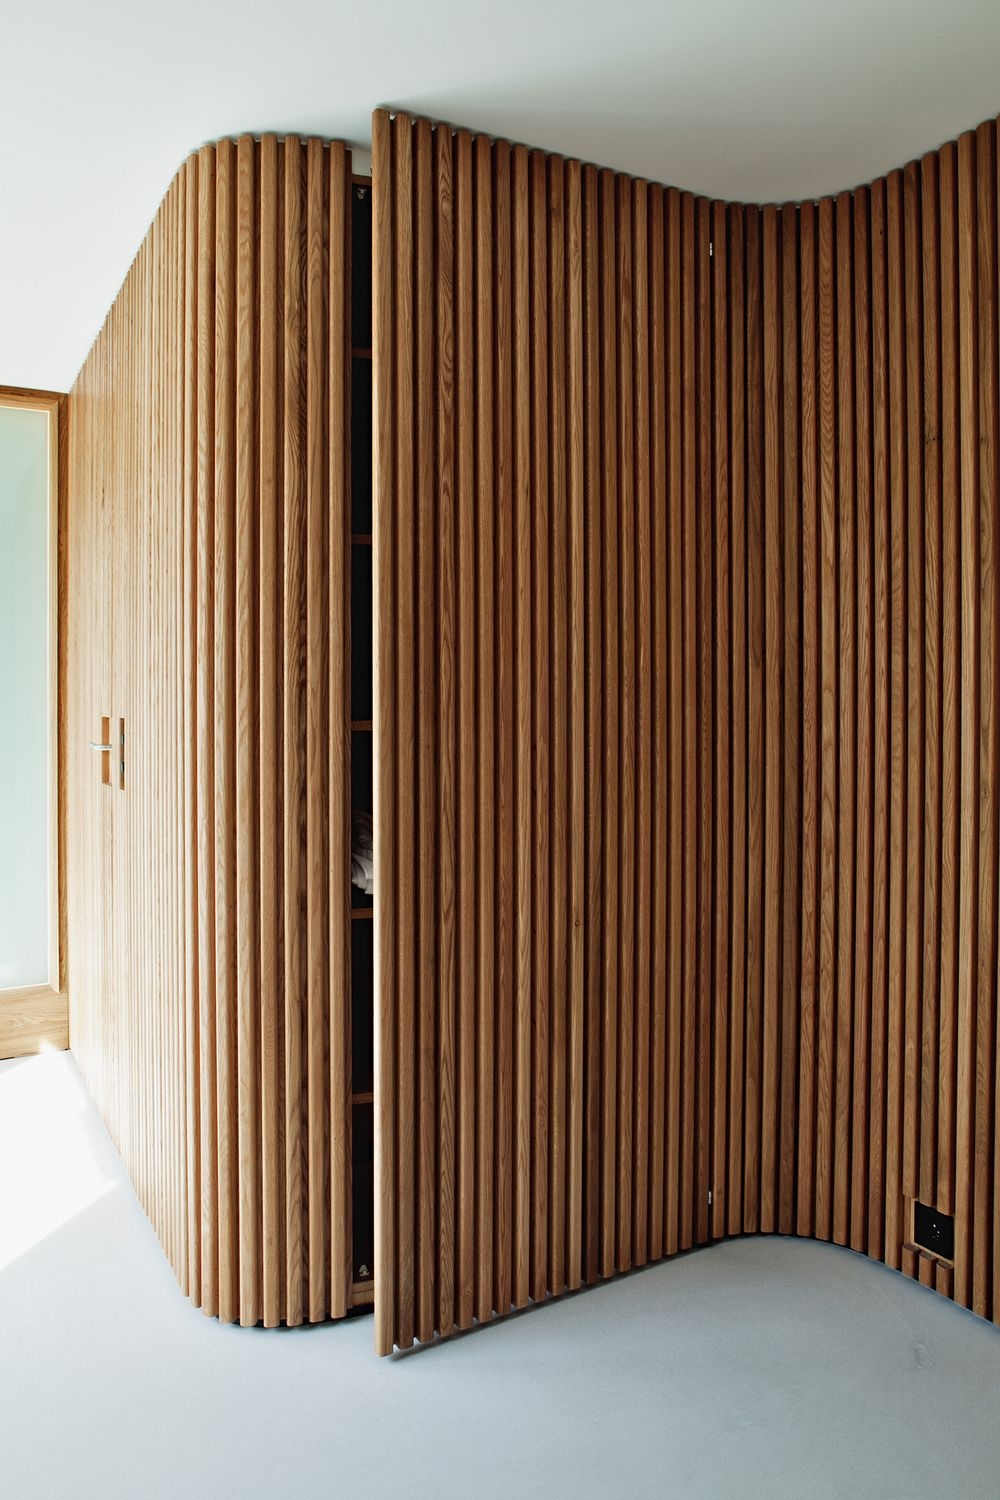 Lund slaatto villa kildeveien interior barn doors for Curved wall